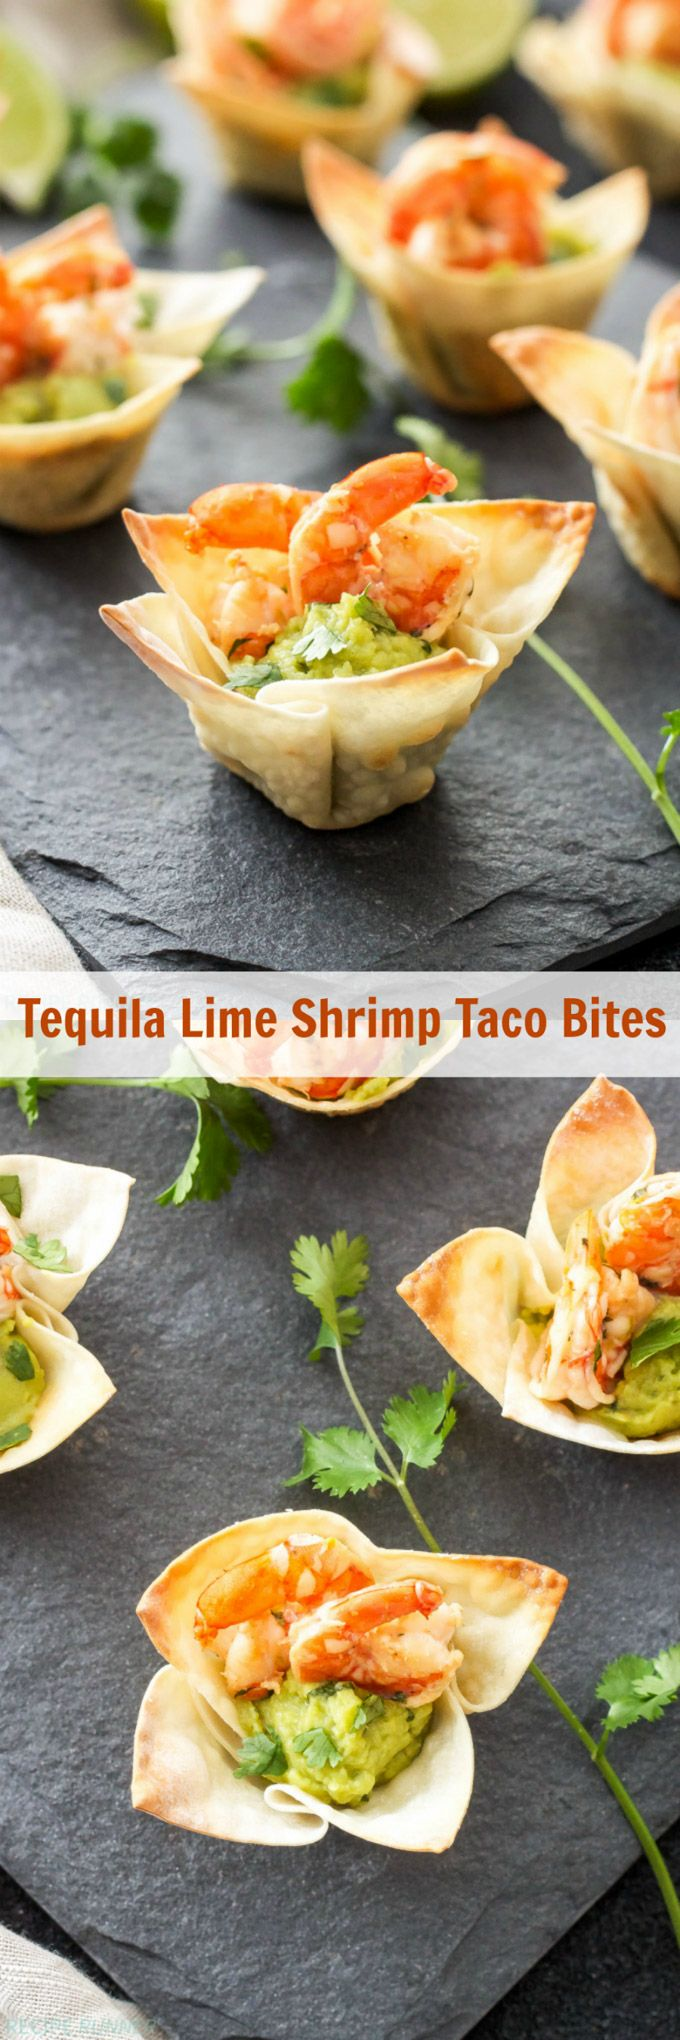 Tequila Lime Shrimp Taco Bites | Mini wonton cups filled with guacamole and topped with shrimp are the perfect, easy to make two-bite appetizer! use GF egg roll wrappers